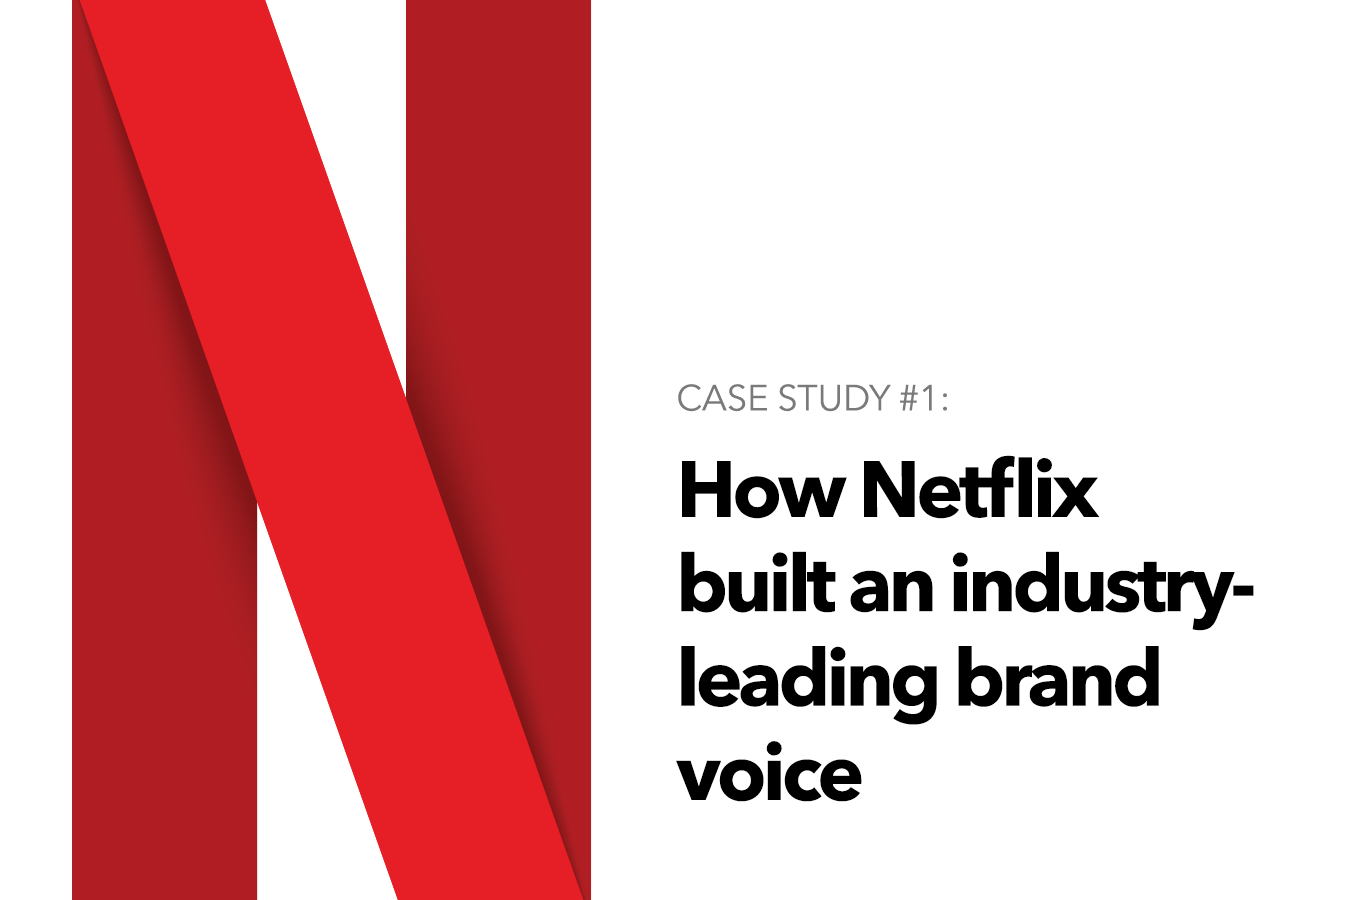 How Netflix built an industry-leading brand voice